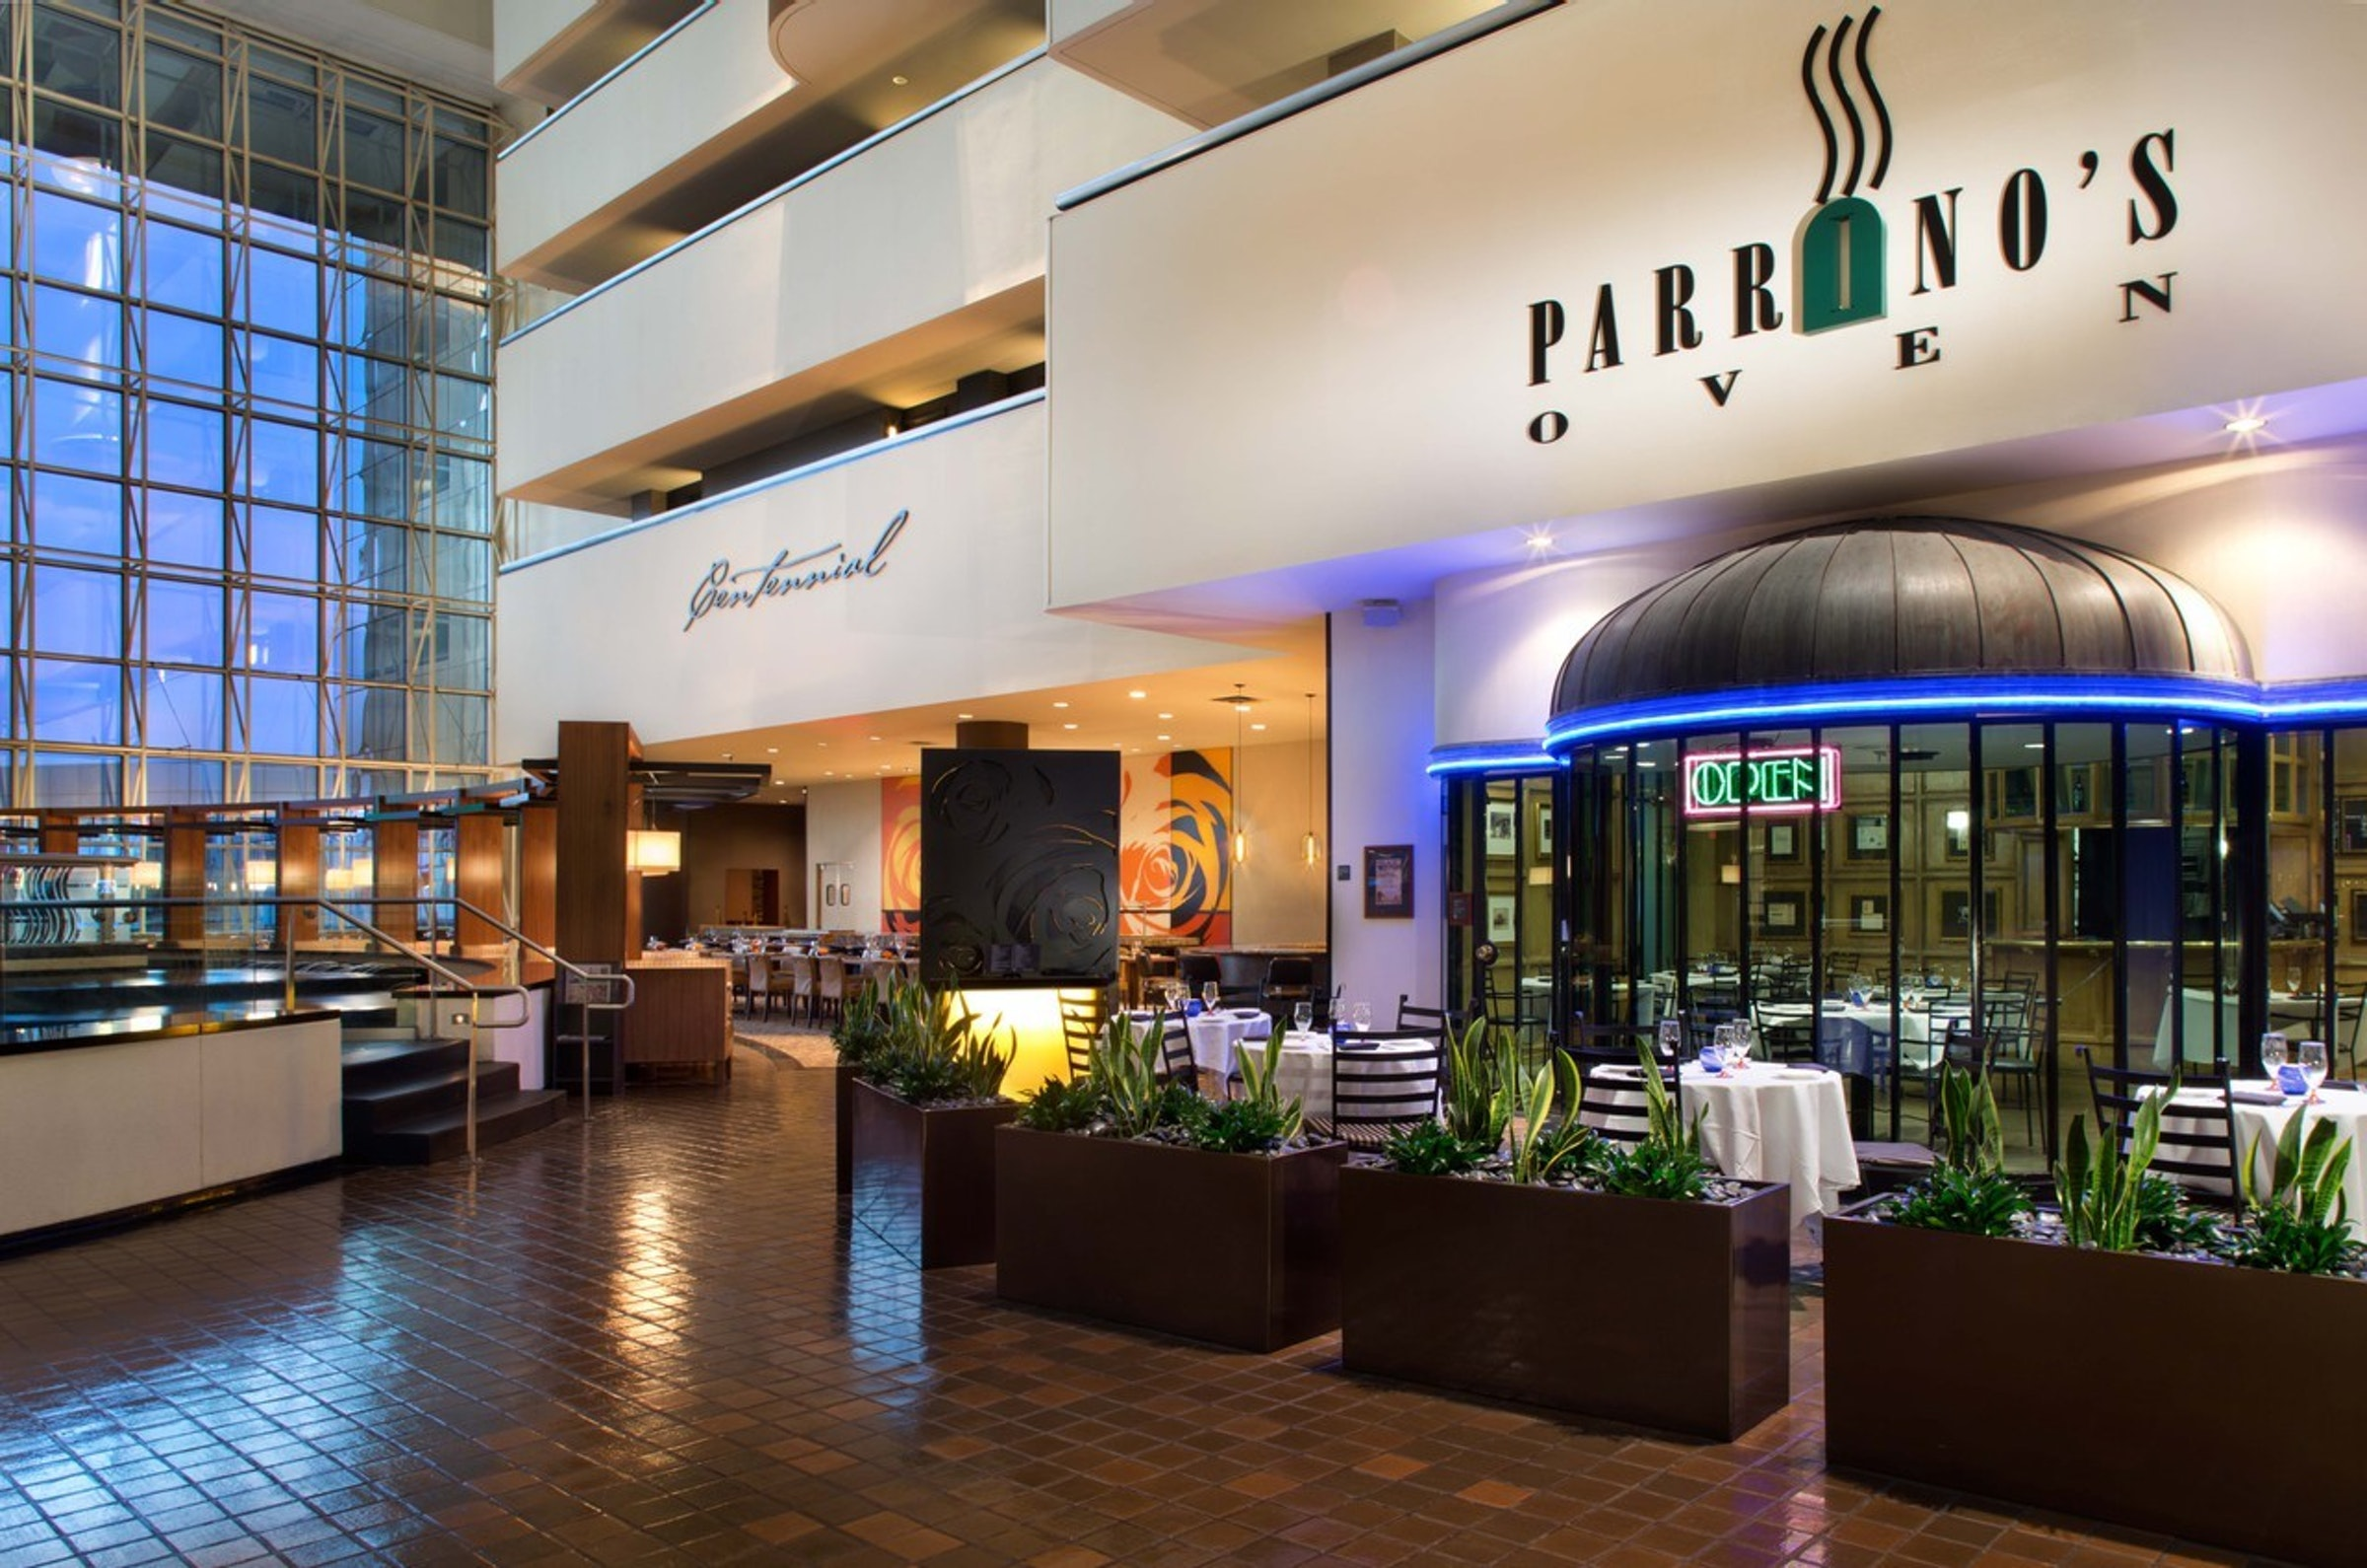 Parrino's Oven in Beyond Dallas